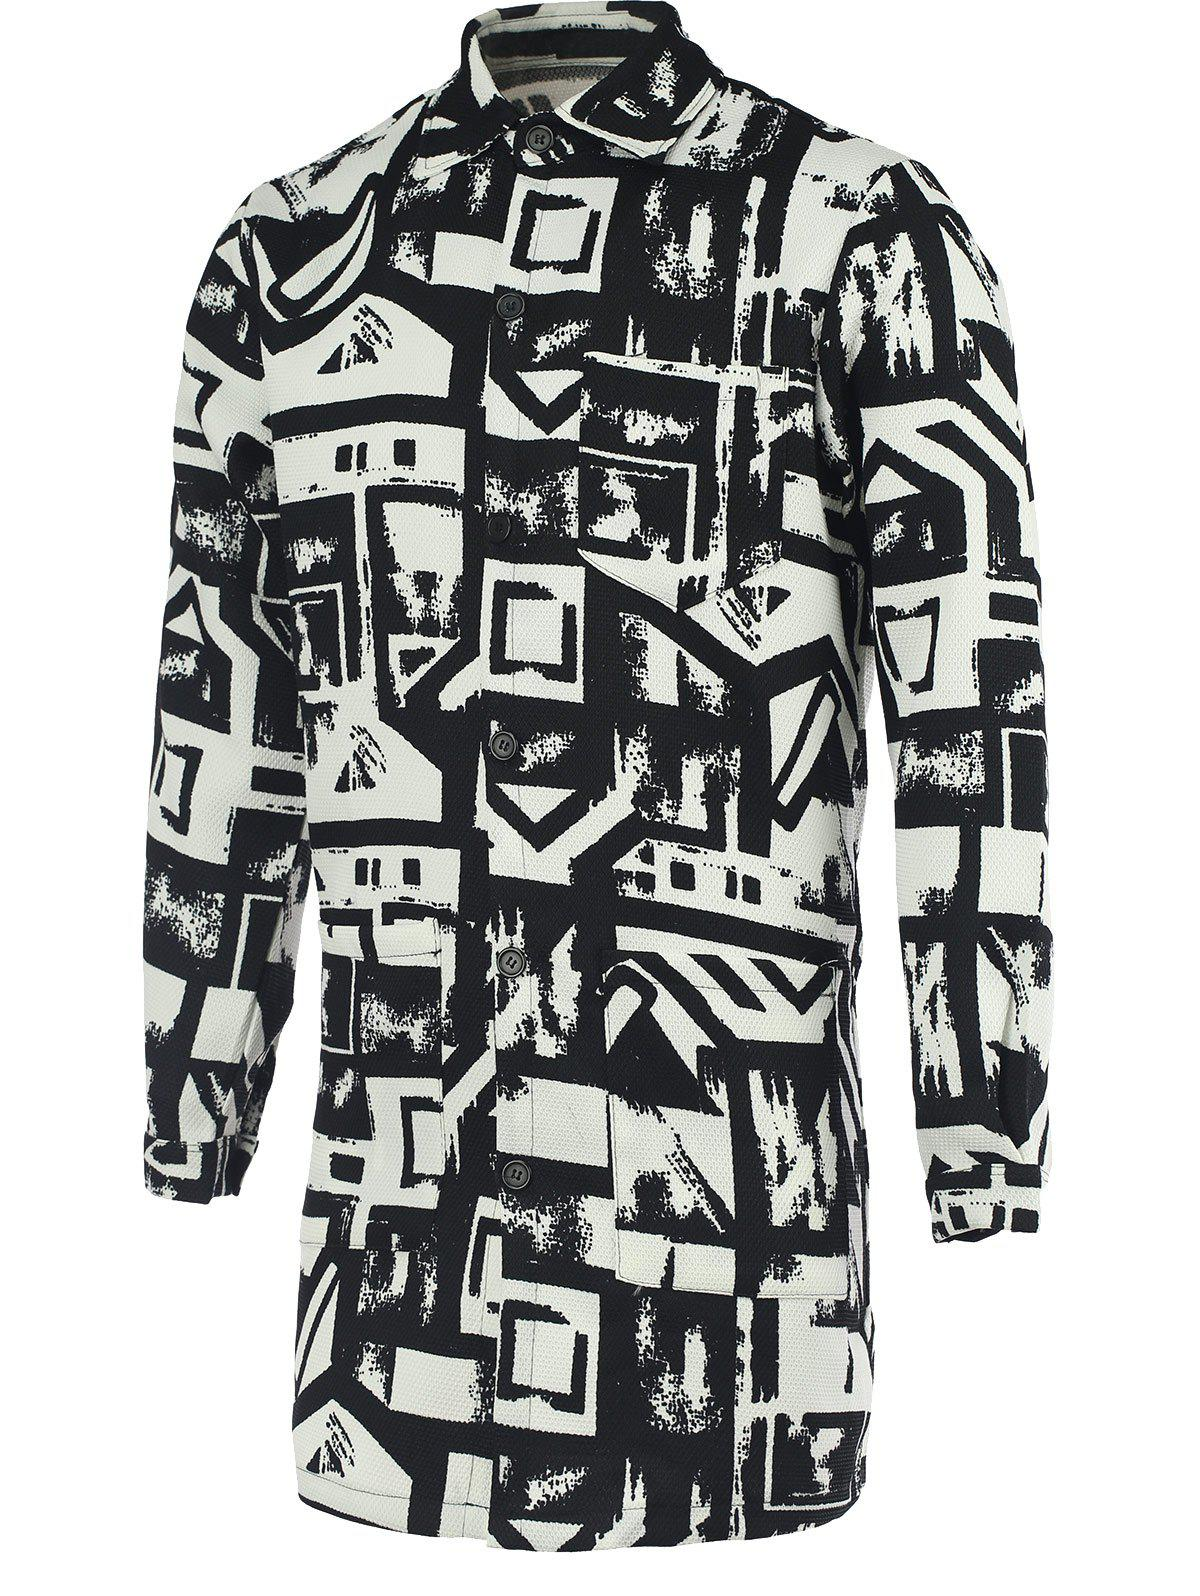 Chic Geometric Print Turn-Down Collar Long Sleeve Black and White Coat For Men - WHITE/BLACK 5XL